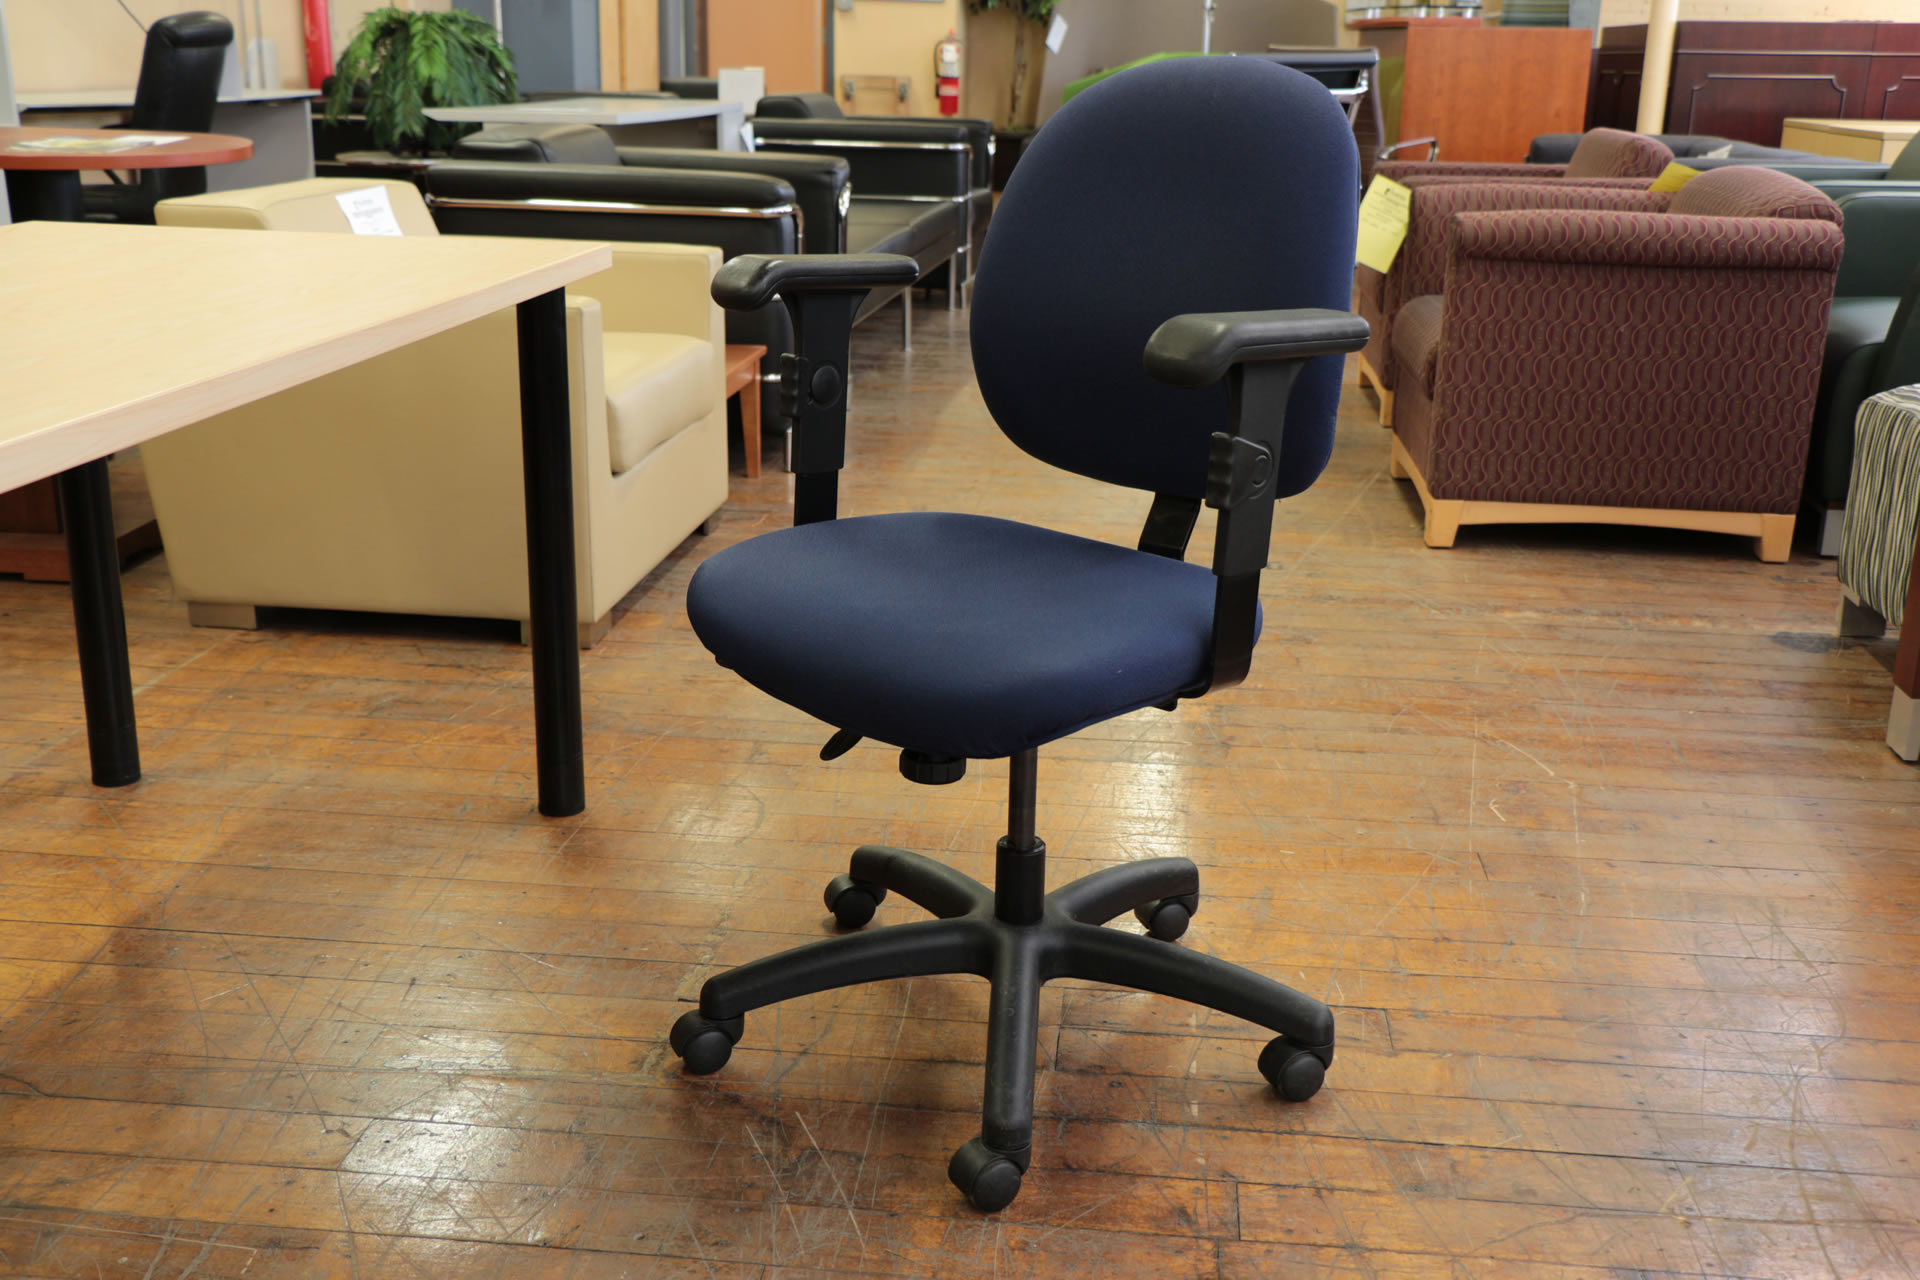 peartreeofficefurniture img g